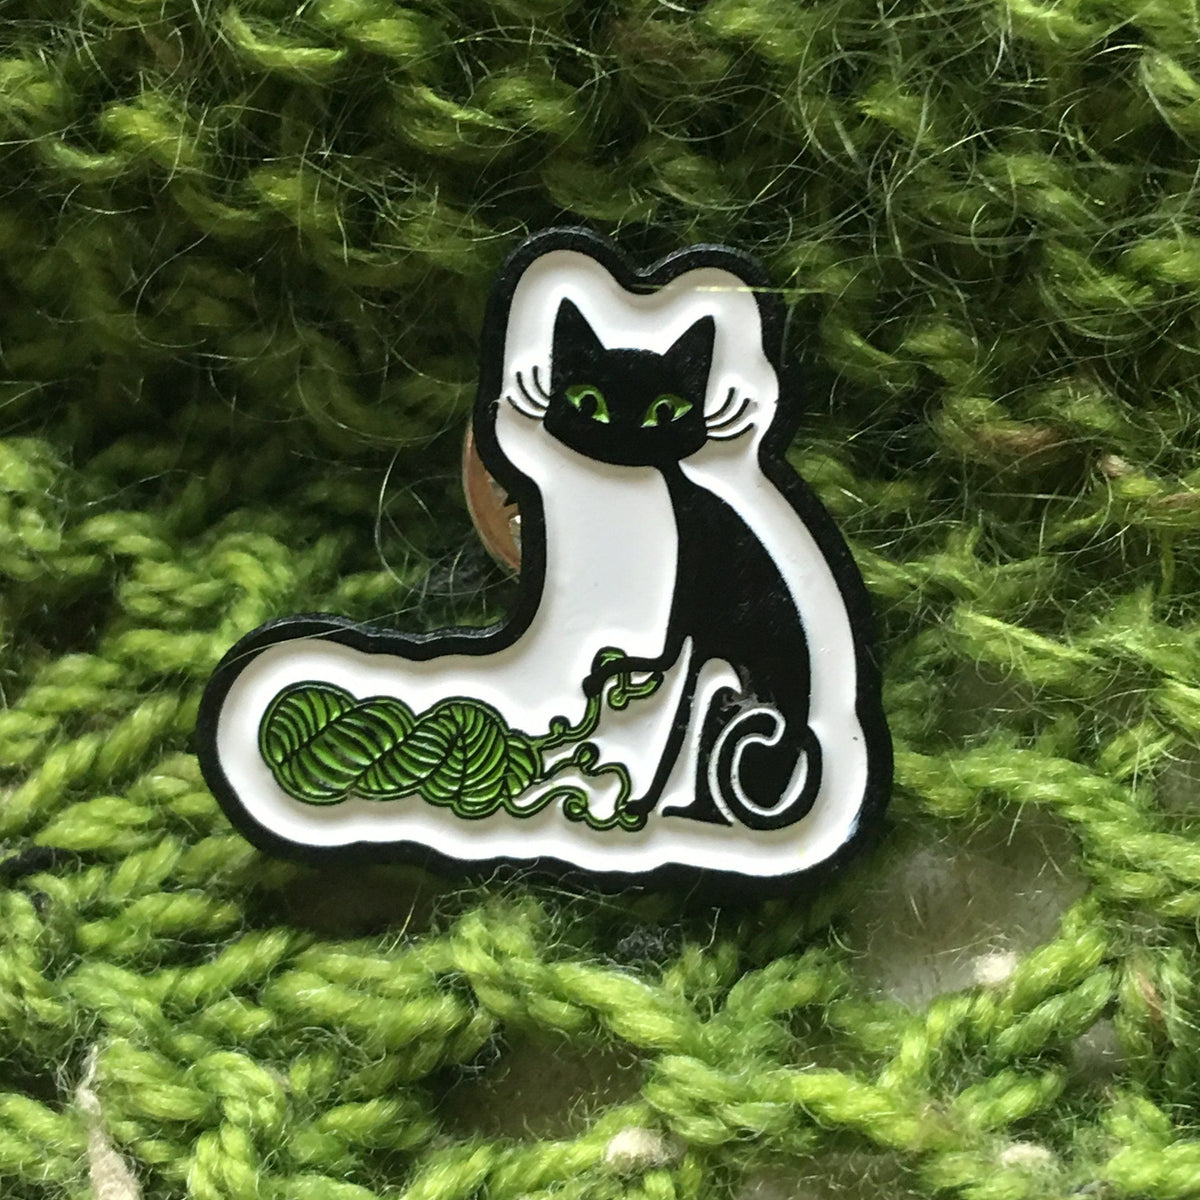 Biscotte Yarns Enamel Pin for knitters